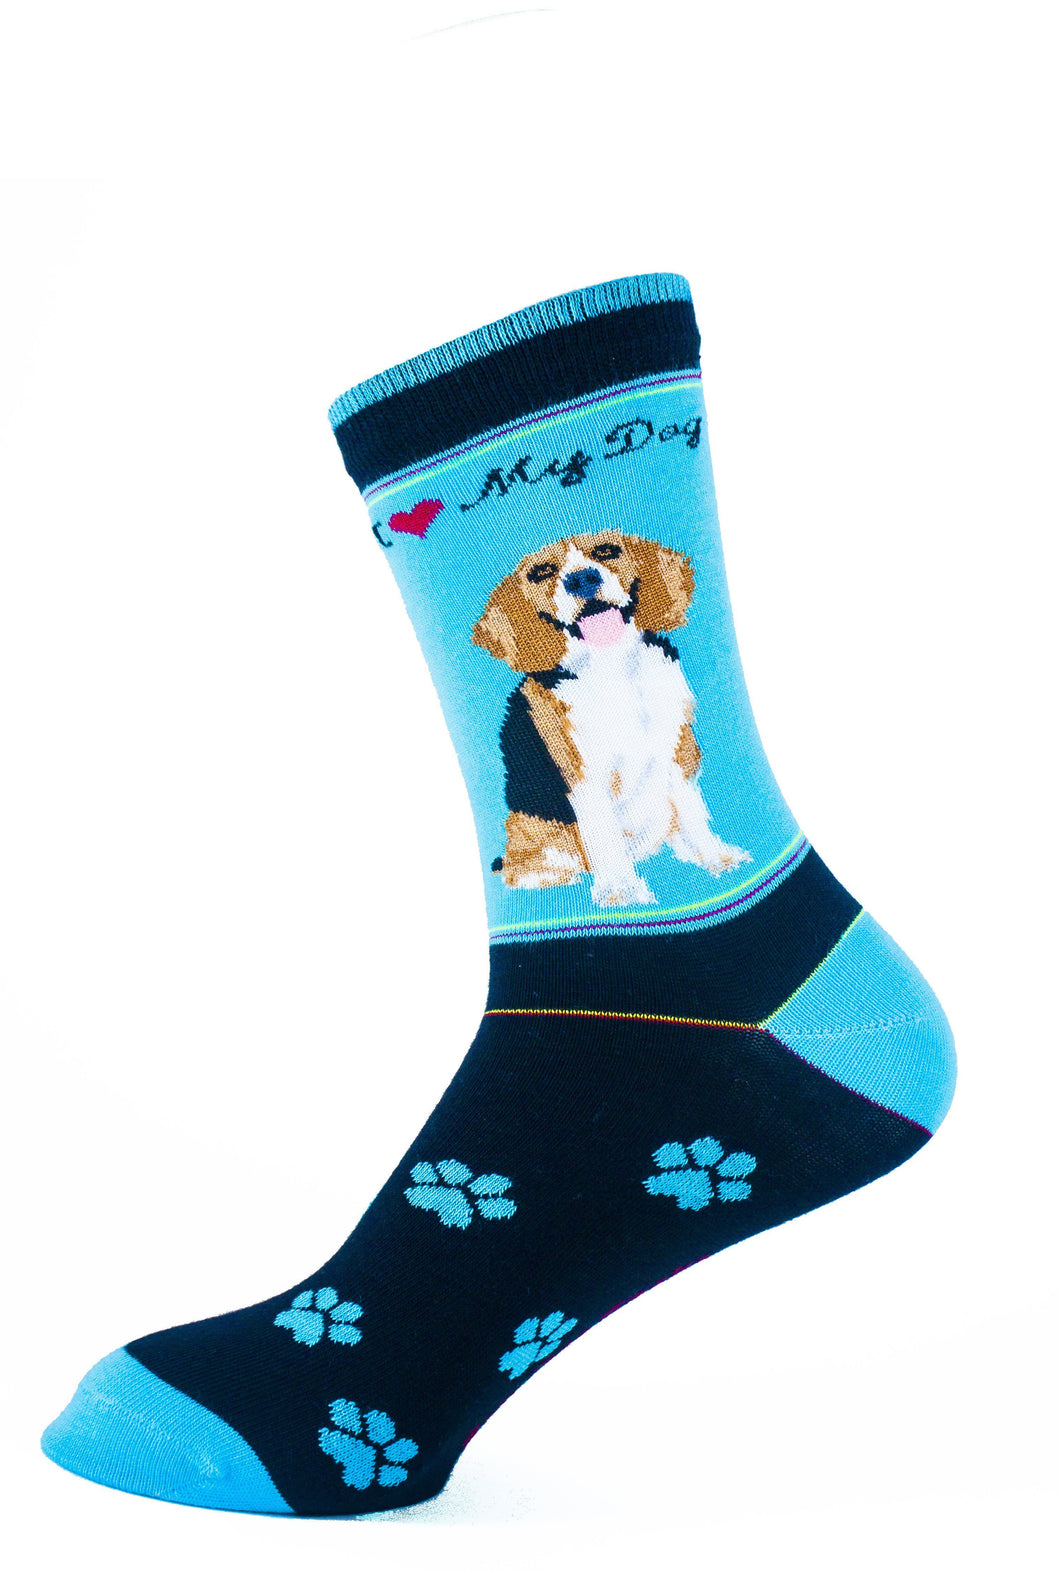 Beagle Dog Socks Signature - samnoveltysocks.com